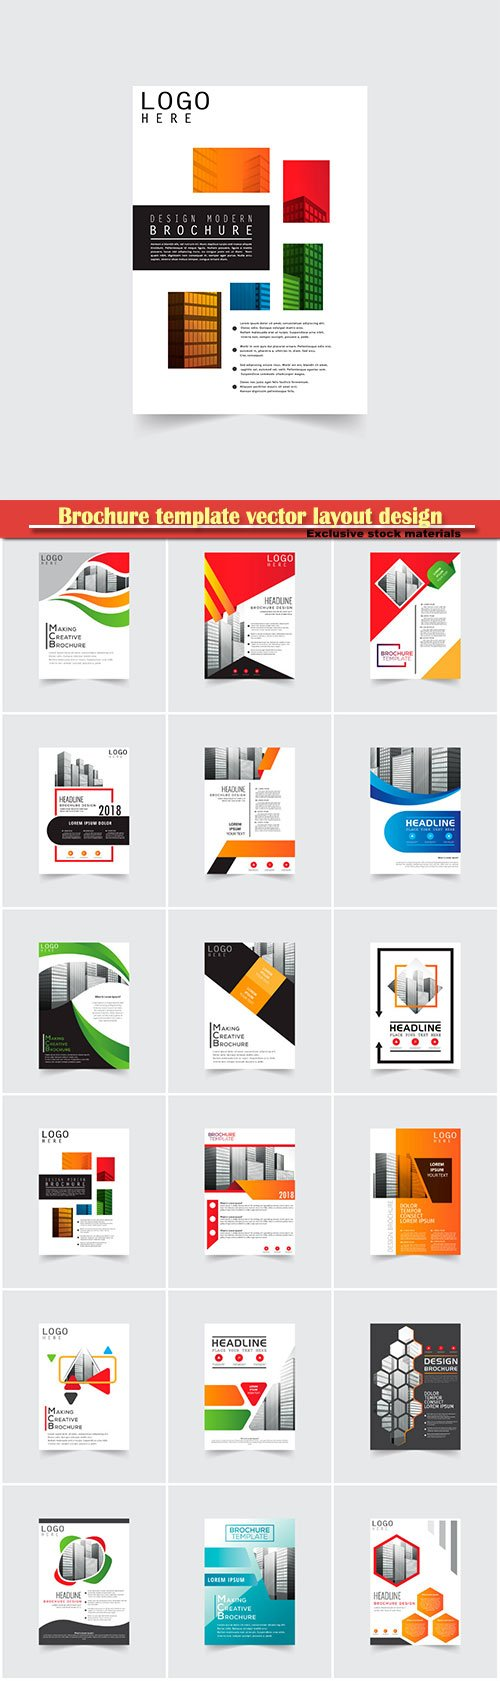 Brochure template vector layout design, corporate business annual report, magazine, flyer mockup # 148